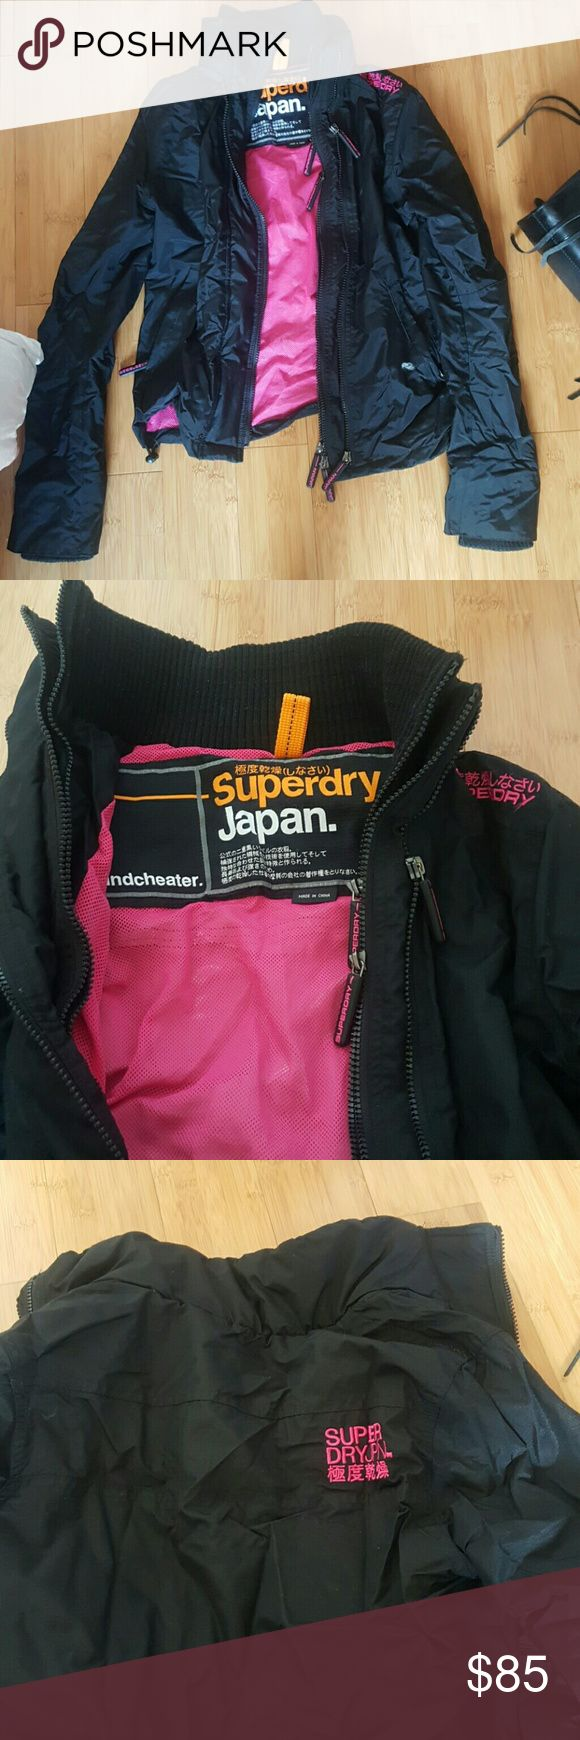 Super dry Japan superdry jacket Windbreaker windcheater jacket. Superdry. Nice and popular japan brand jacket! Keeps you warmer than the average Northlake one in my opinion. Very good condition. Love how the collar of the neck area is prominent and stands up to keep you warm Superdry Jackets & Coats Puffers